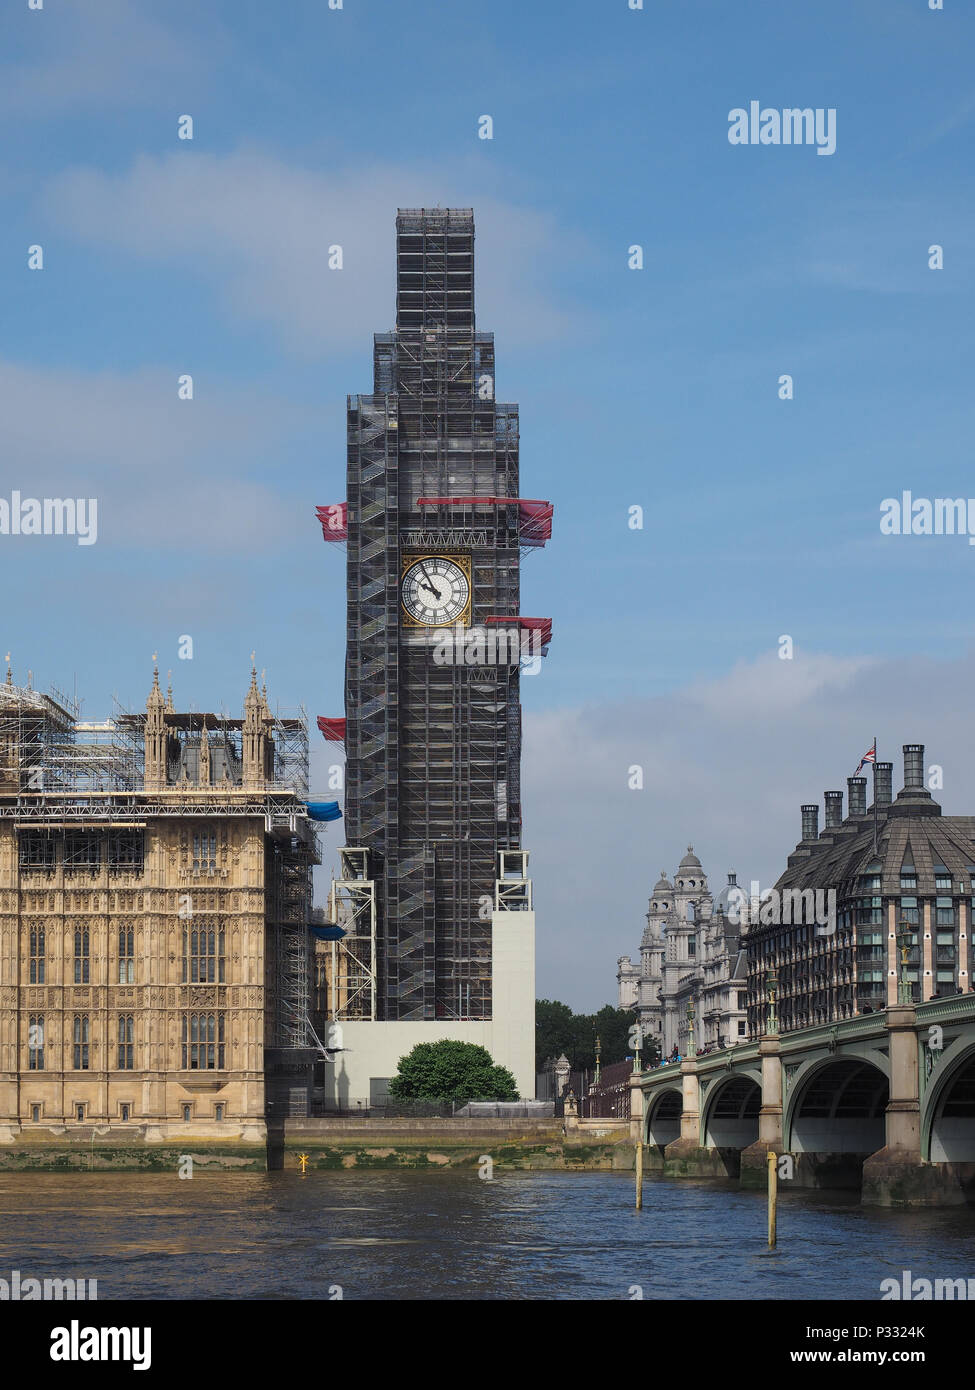 Big Ben Conservation Works At The Houses Of Parliament Aka Westminster Palace Of London Uk Stock Photo Alamy